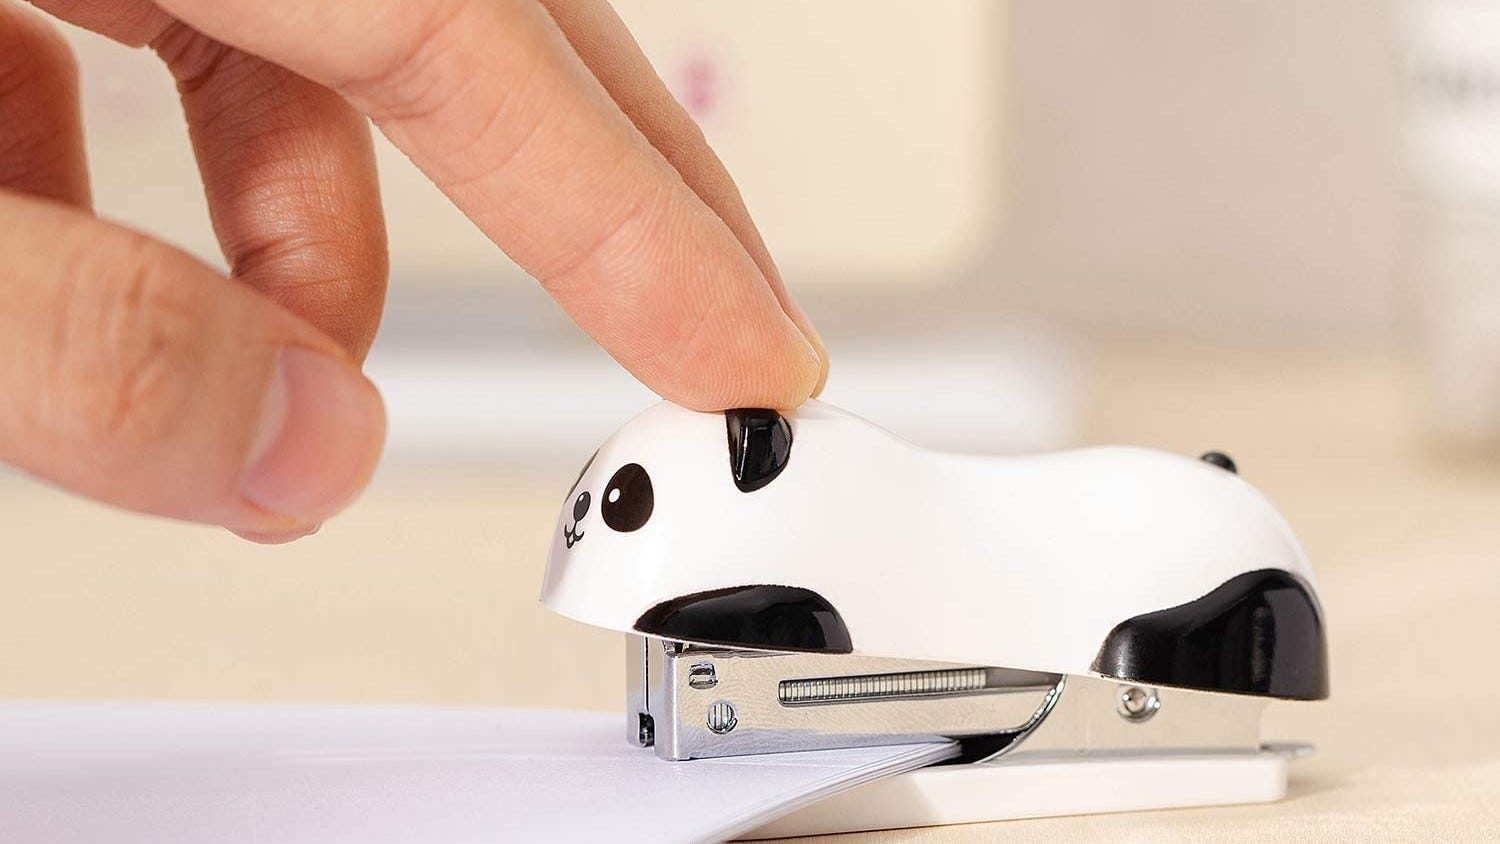 Panda stapler being used to staple papers.